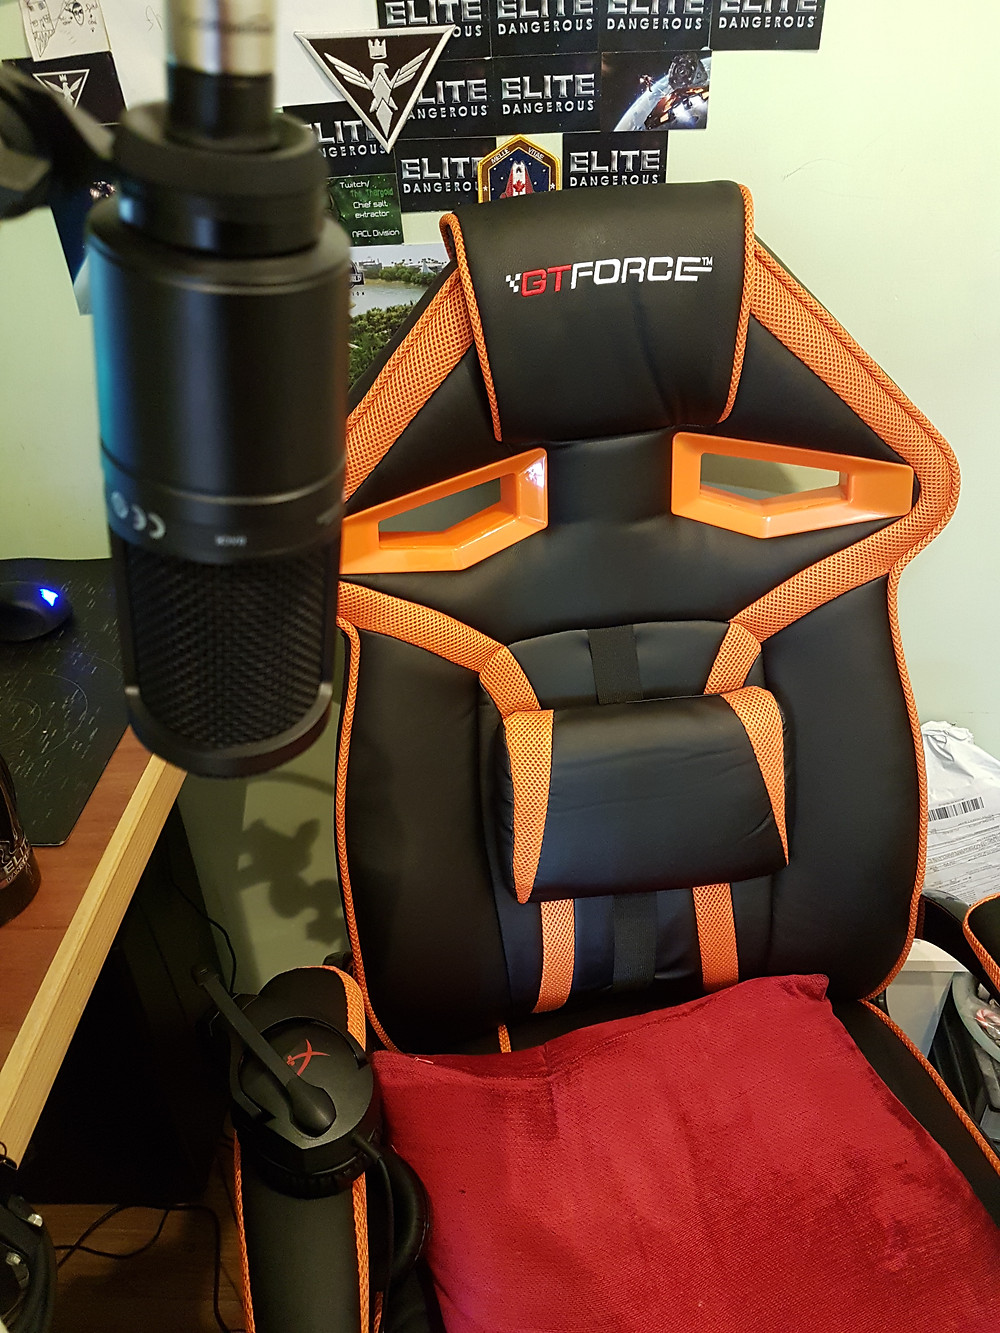 Picture of GTForce gaming chair. Black with orange trim in racing car style